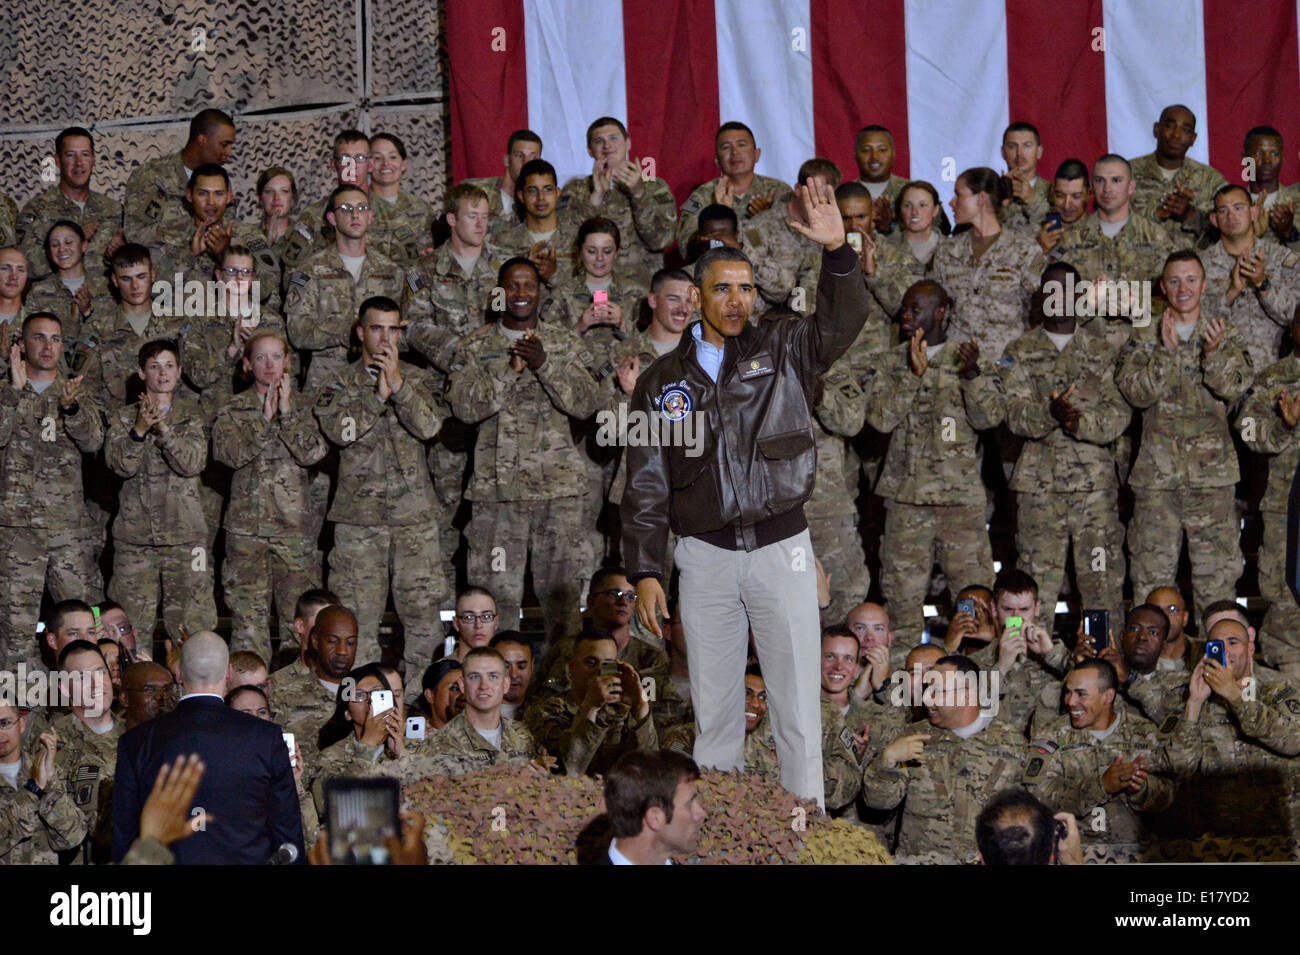 US President Barack Obama waves to service members during an unannounced visit to Bagram Air Field May 25, 2014 in Afghanistan. - Stock Image